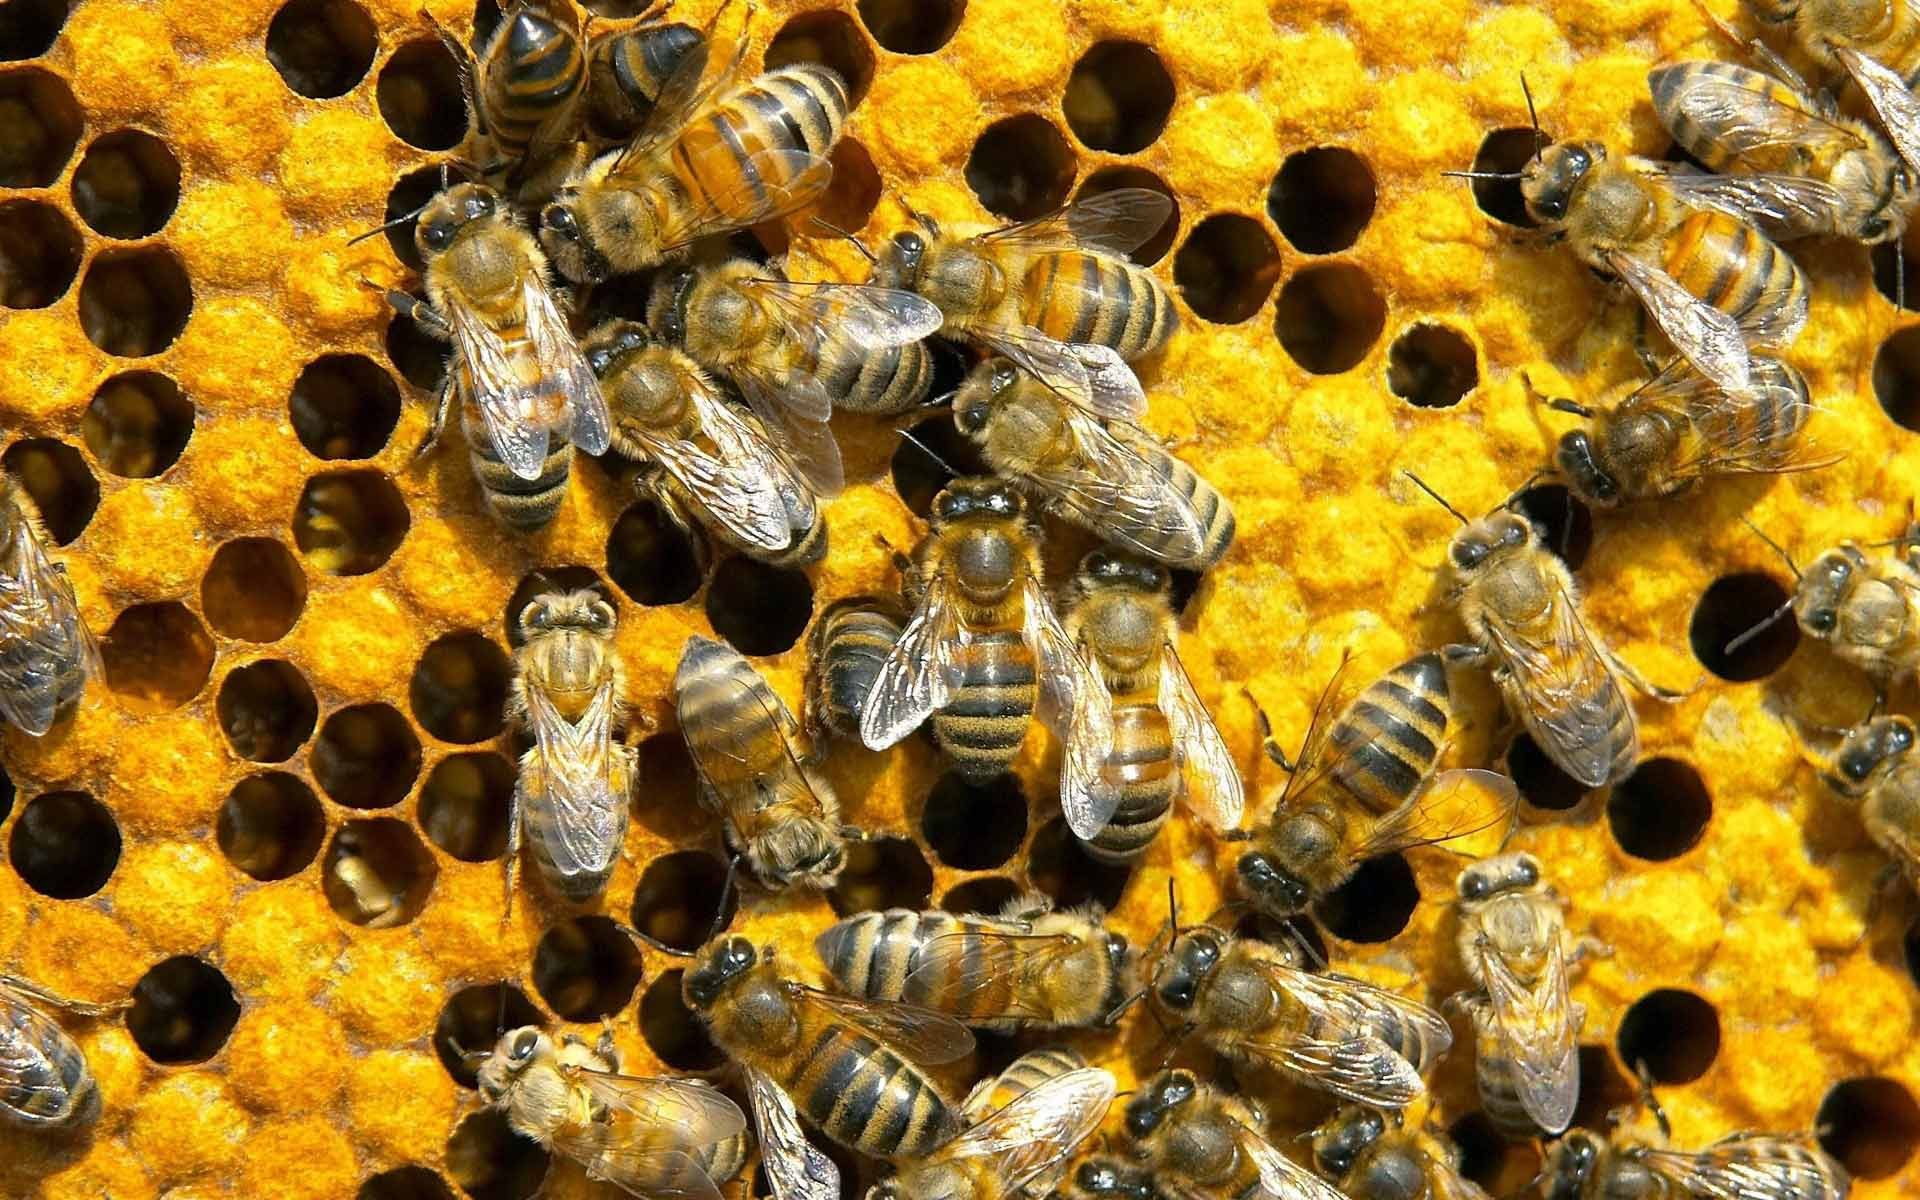 'If bees go extinct, their loss will trigger an extinction domino effect.'